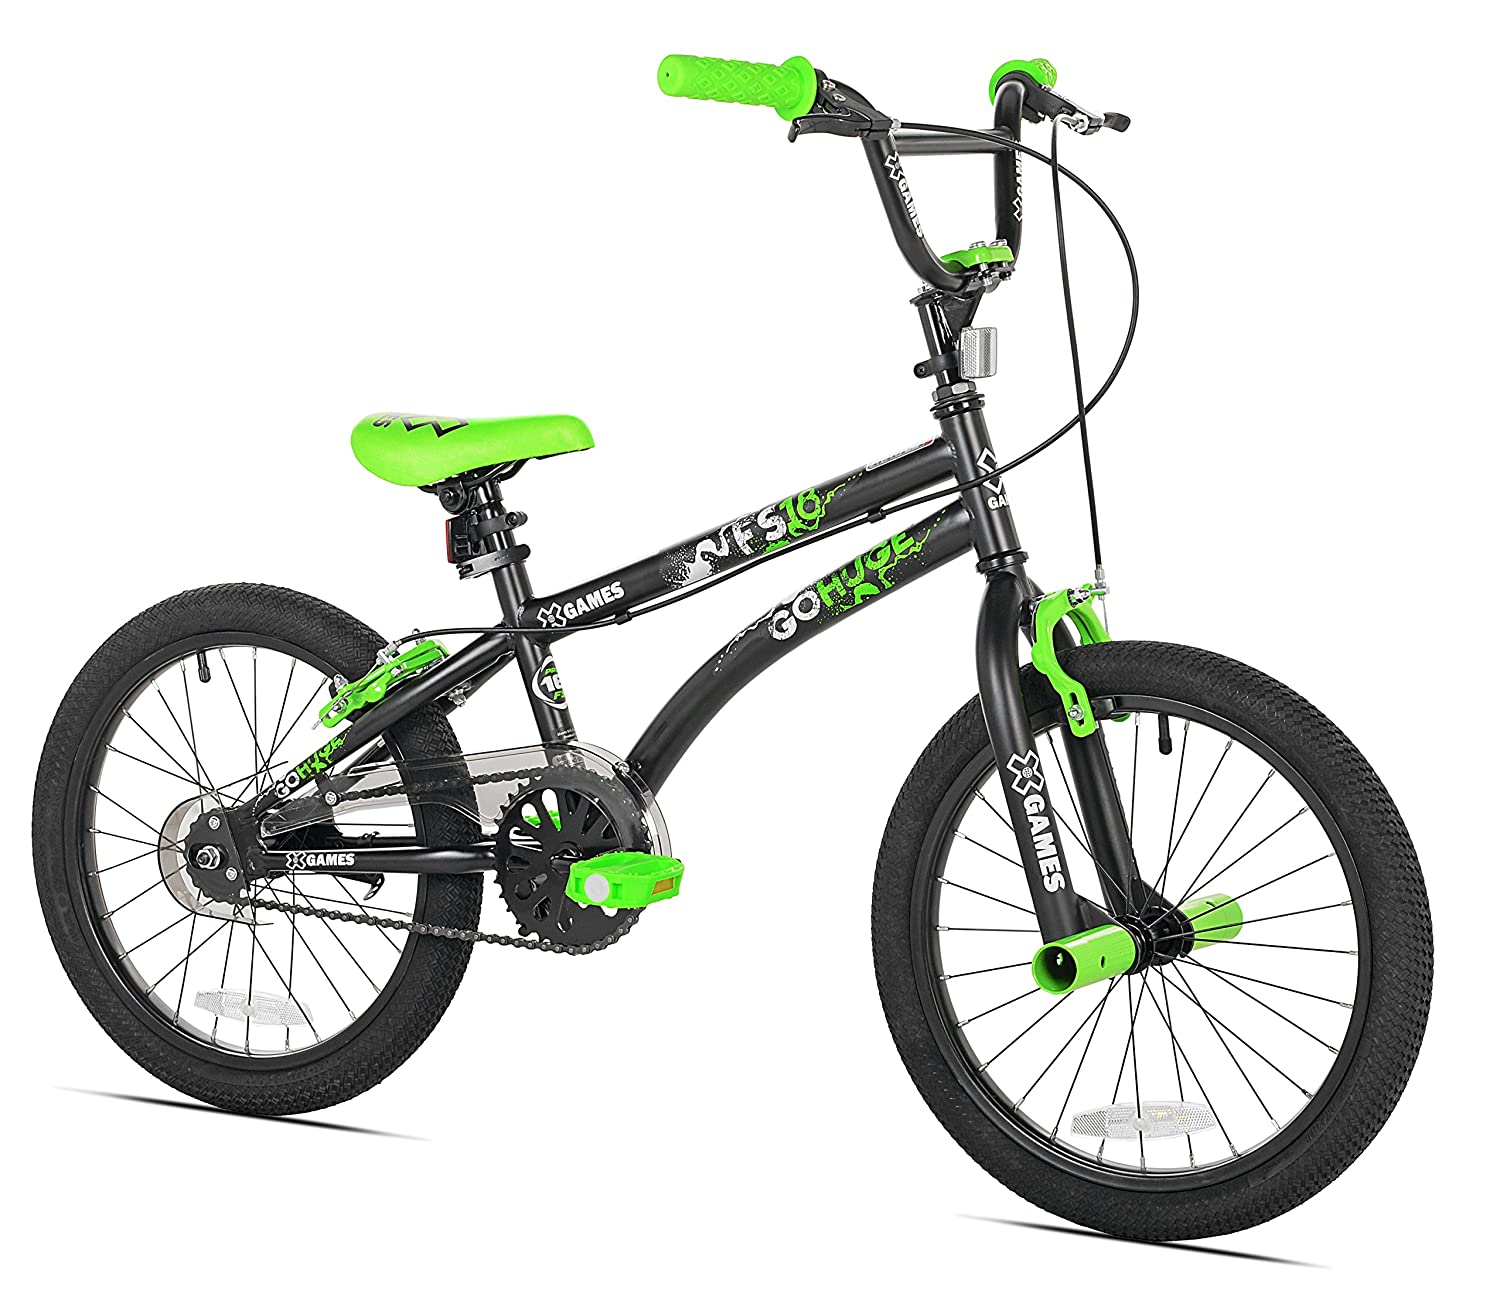 Kawasaki Bmx Kid S Bike 20 Inch Wheels 11 25 Inch Frame Boy S